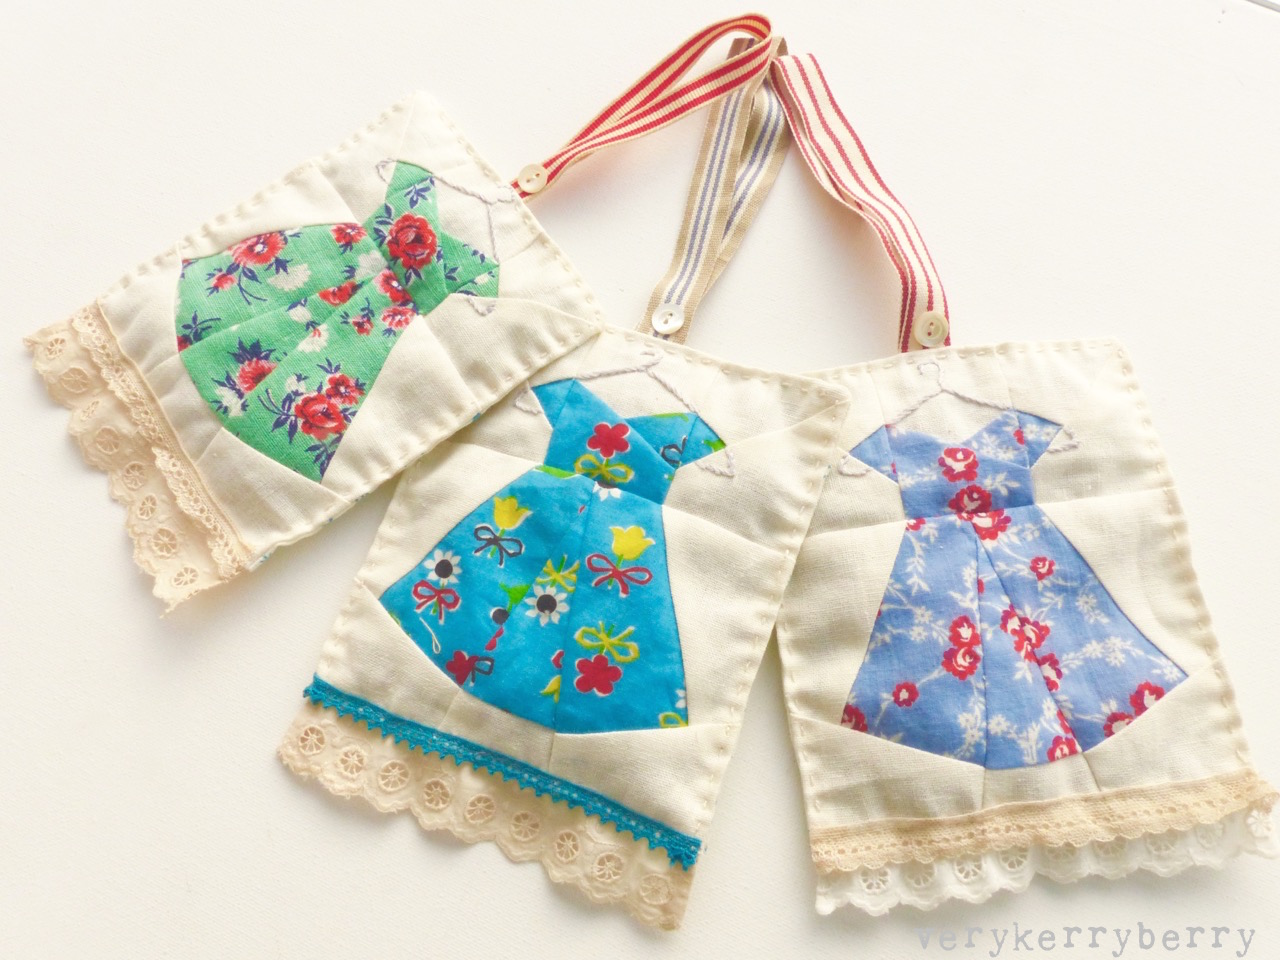 Sew ichigo sew very christmas dress lavender bag tutorial Ideas for hanging backpacks